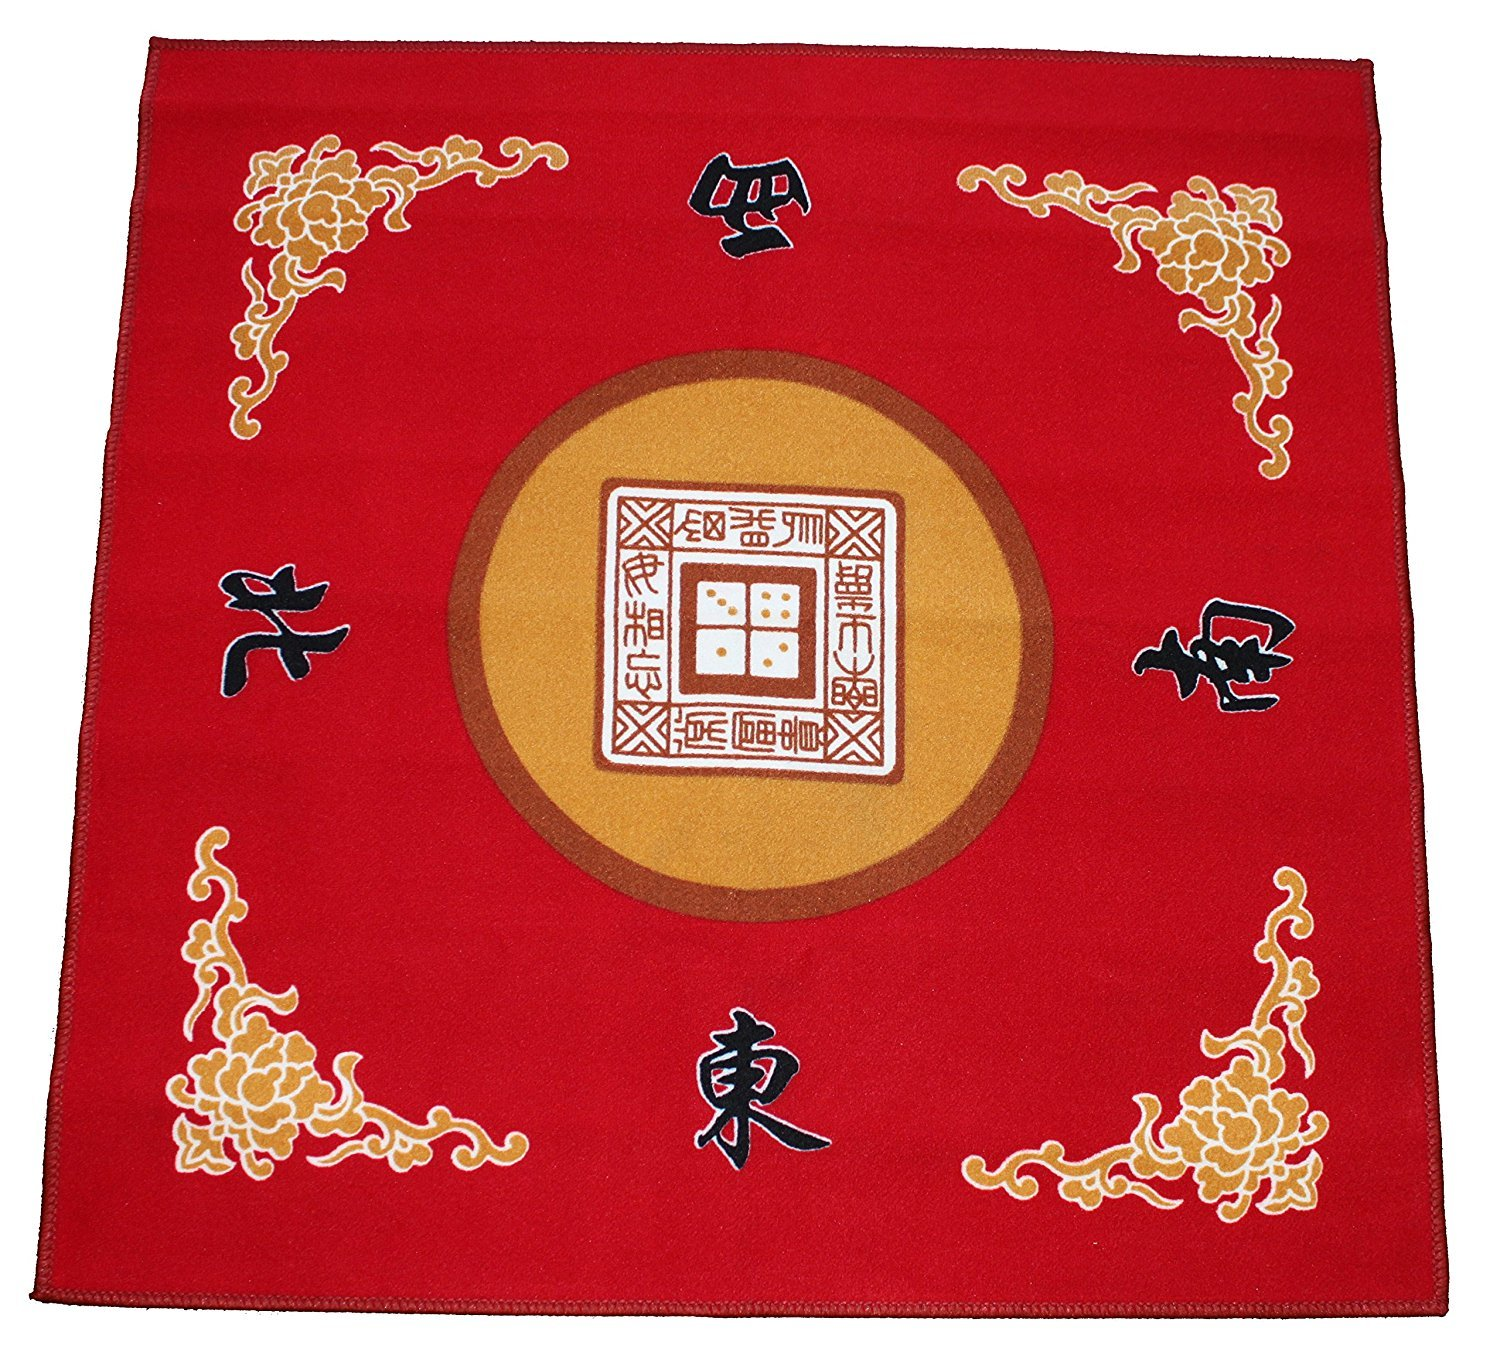 31.5'' Table Cover - Slip Resistant Mahjong Game / Poker / Dominos / Card Tablecover Table Top Mat - Red by We pay your sales tax (Image #2)